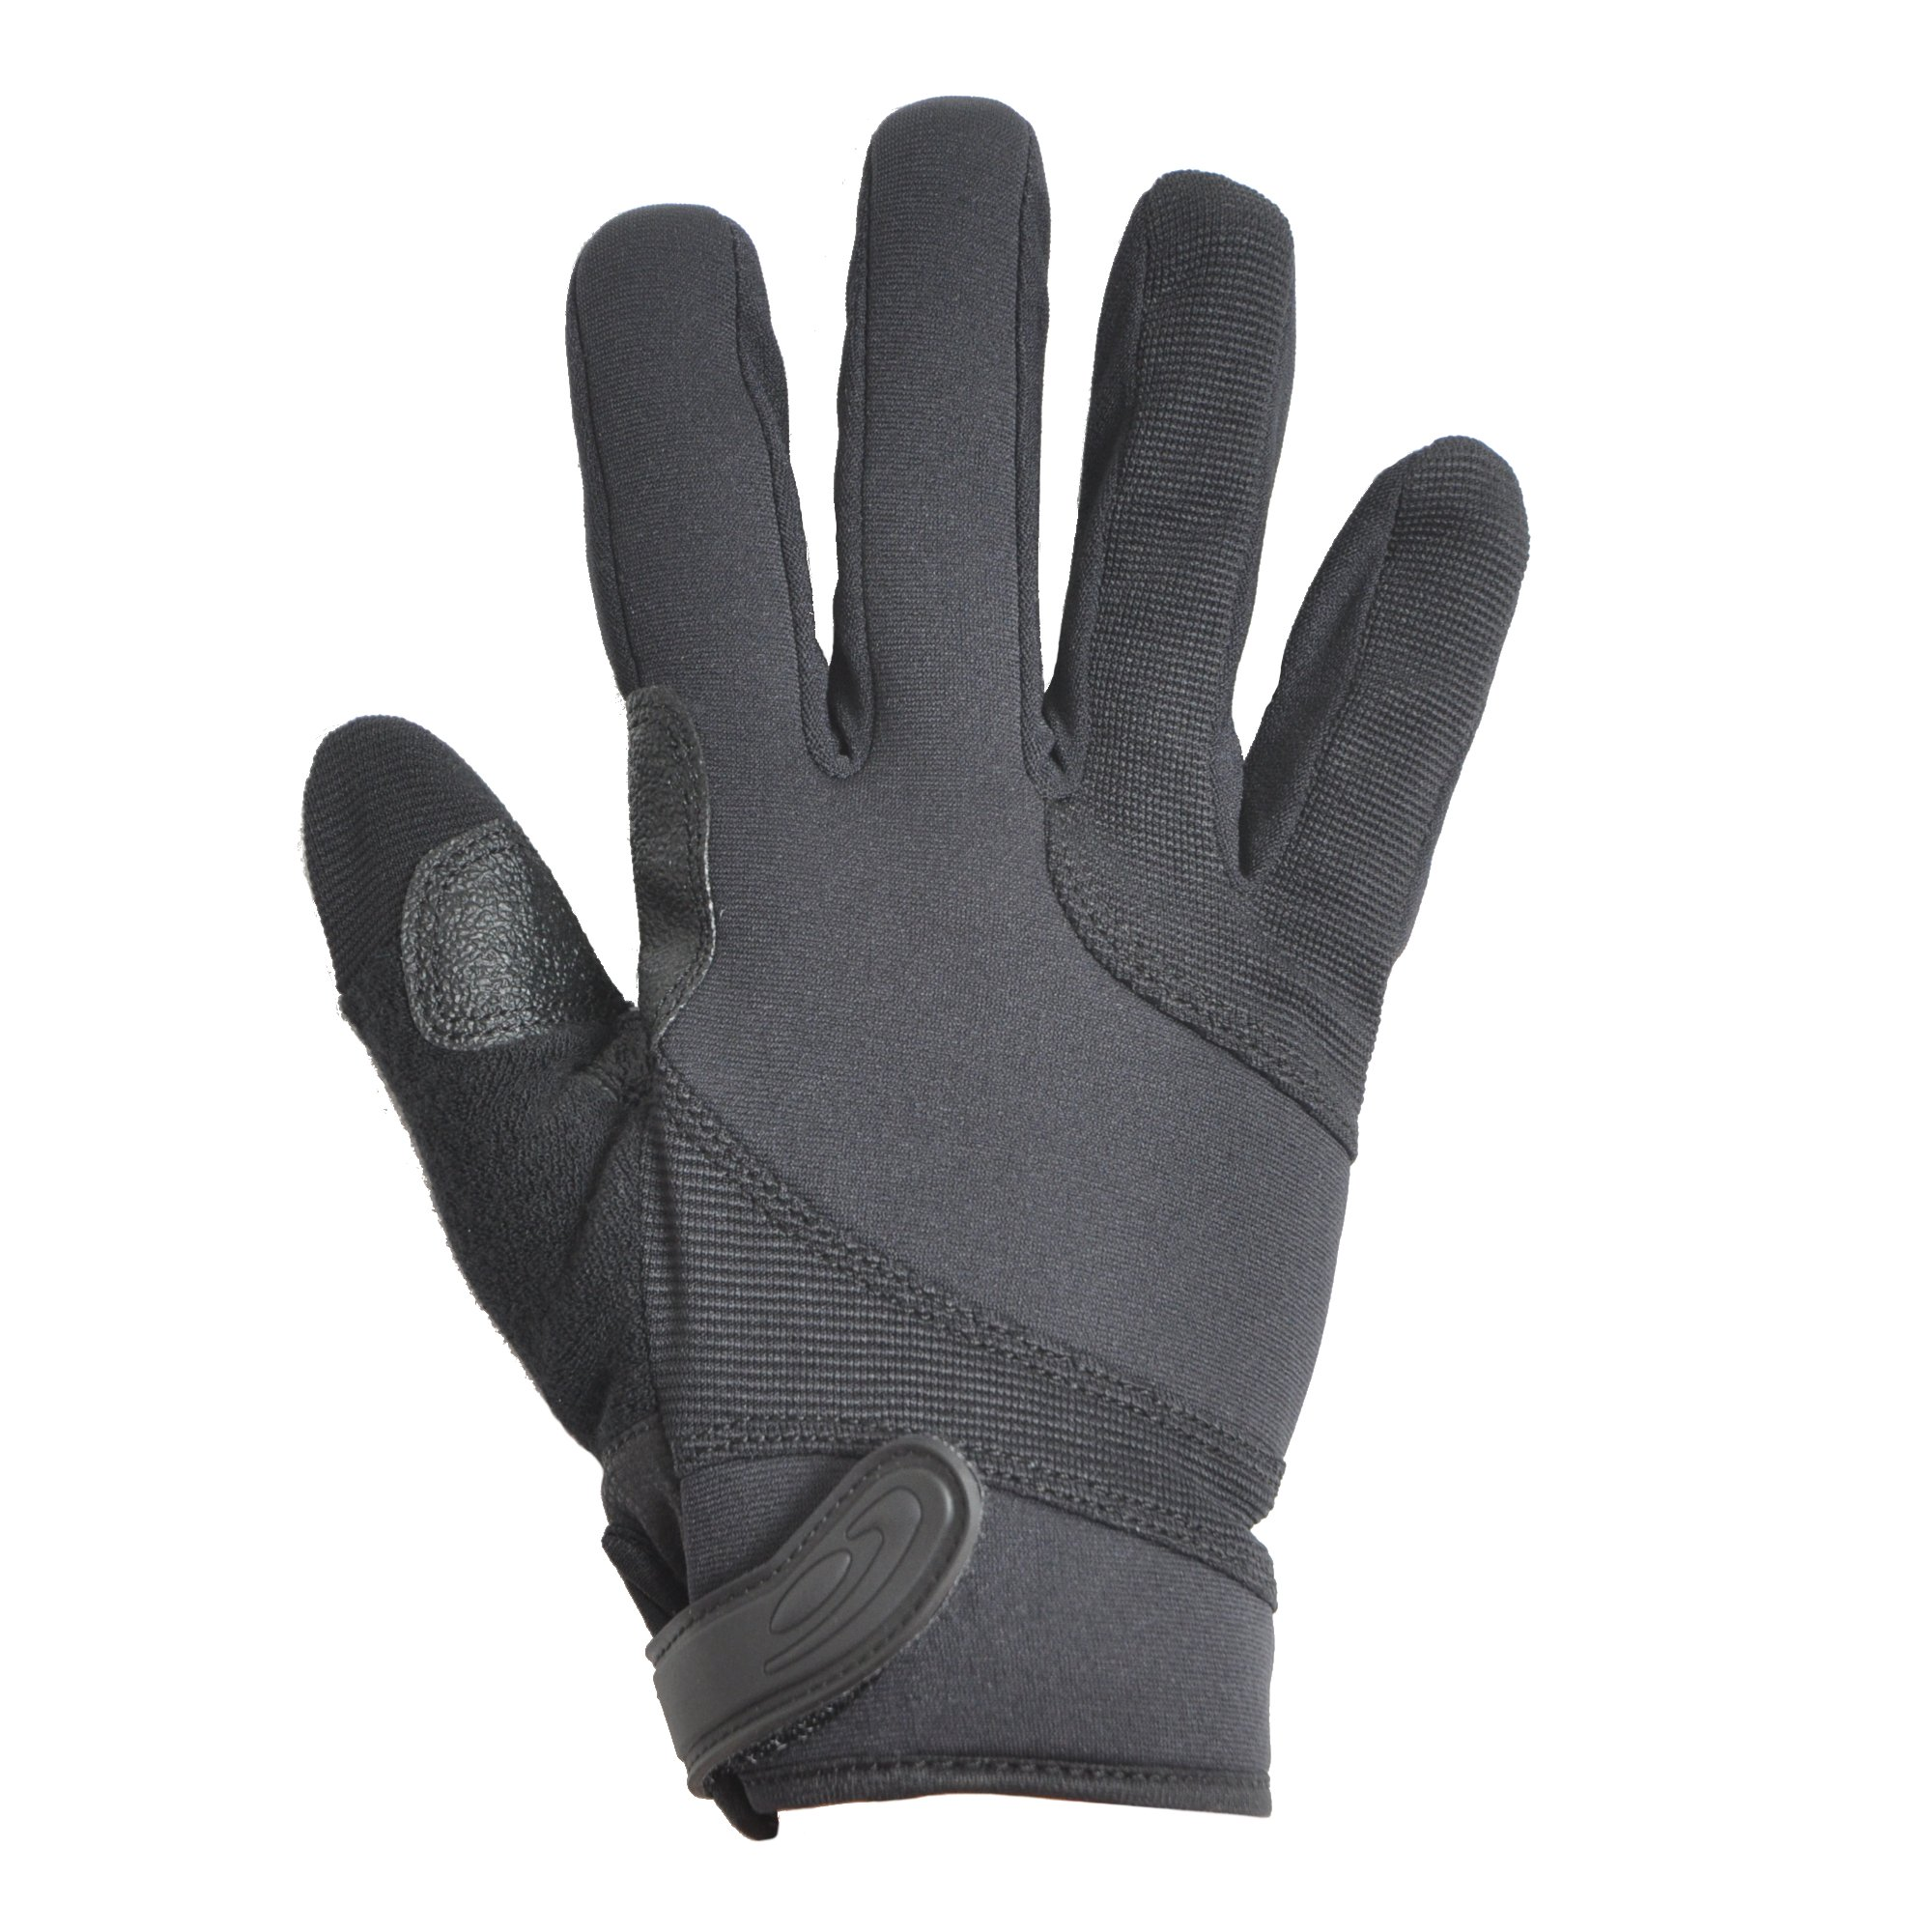 Hatch SGK100 Street Guard  Glove w/Kevlar, Black, 2X-Large by Hatch (Image #2)